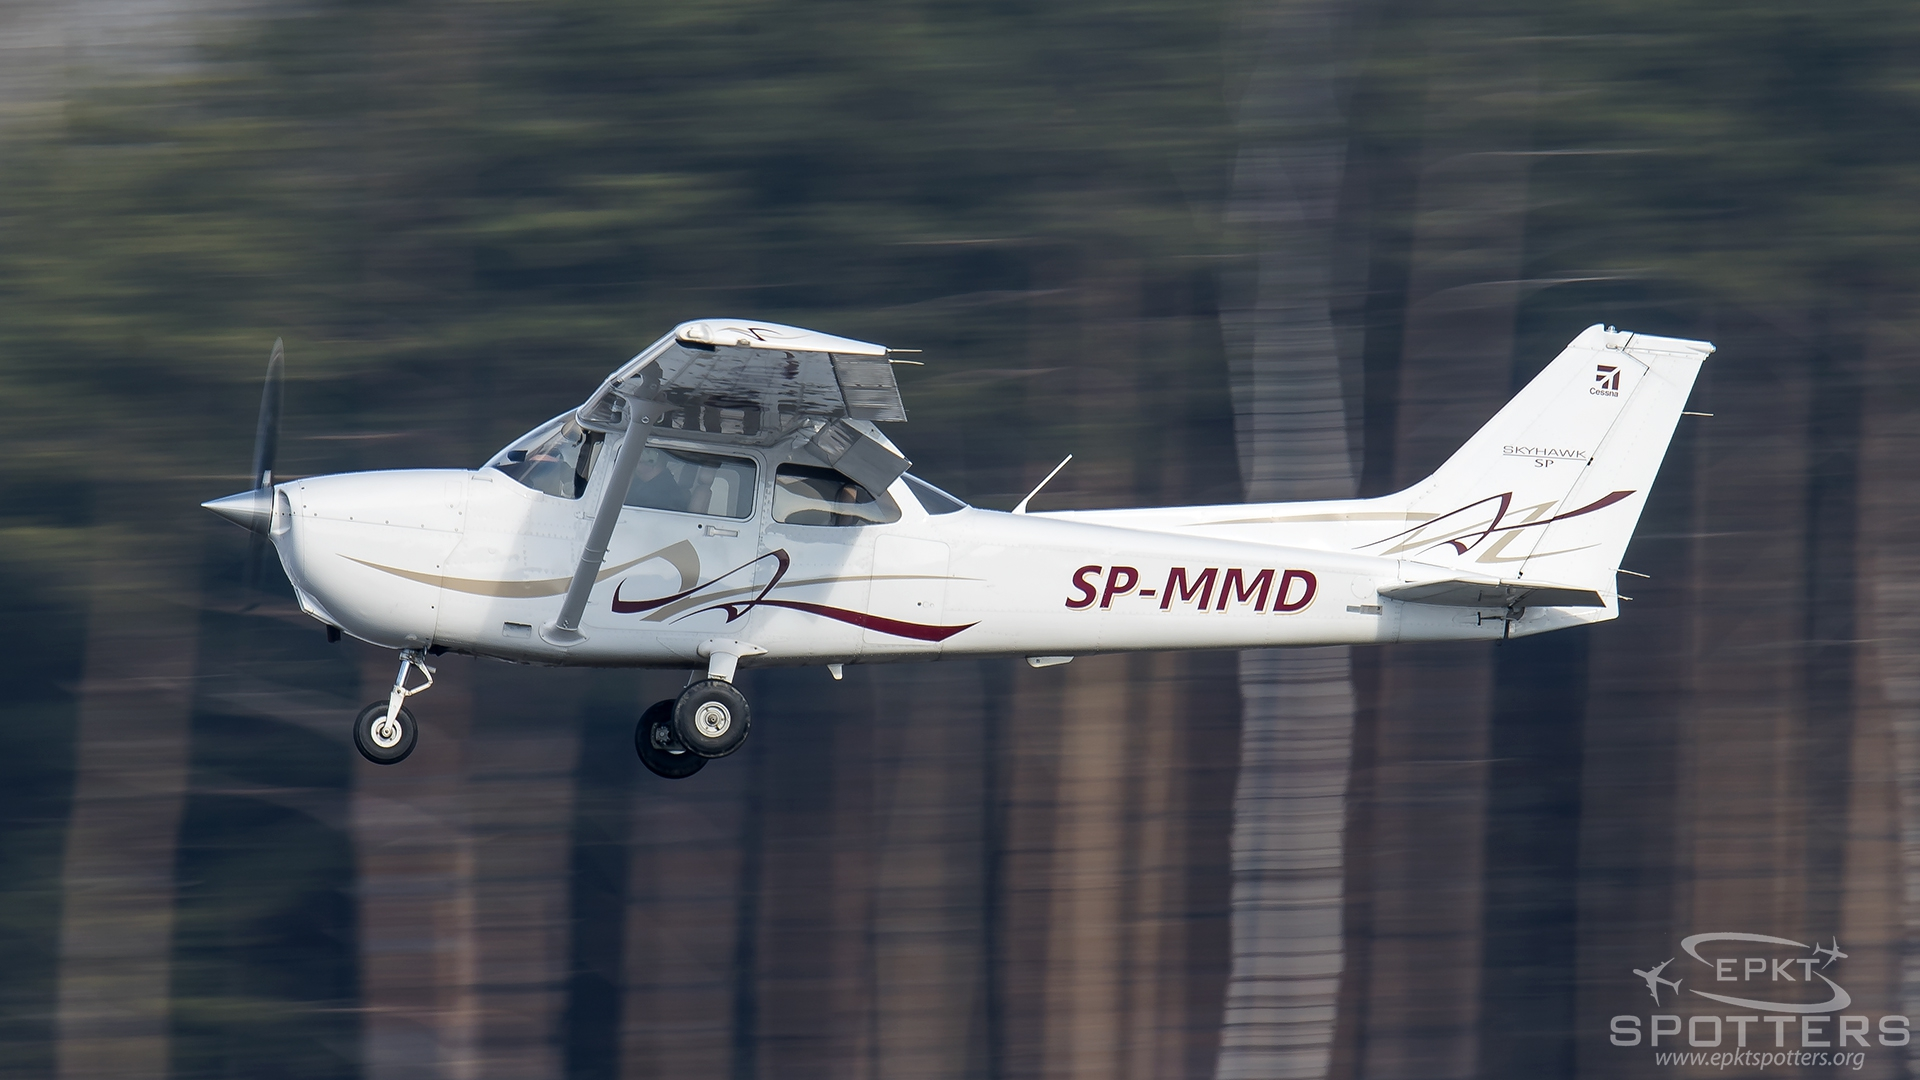 SP-MMD - Cessna 172 Skyhawk SP (Private Owner) / Pyrzowice - Katowice Poland [EPKT/KTW]